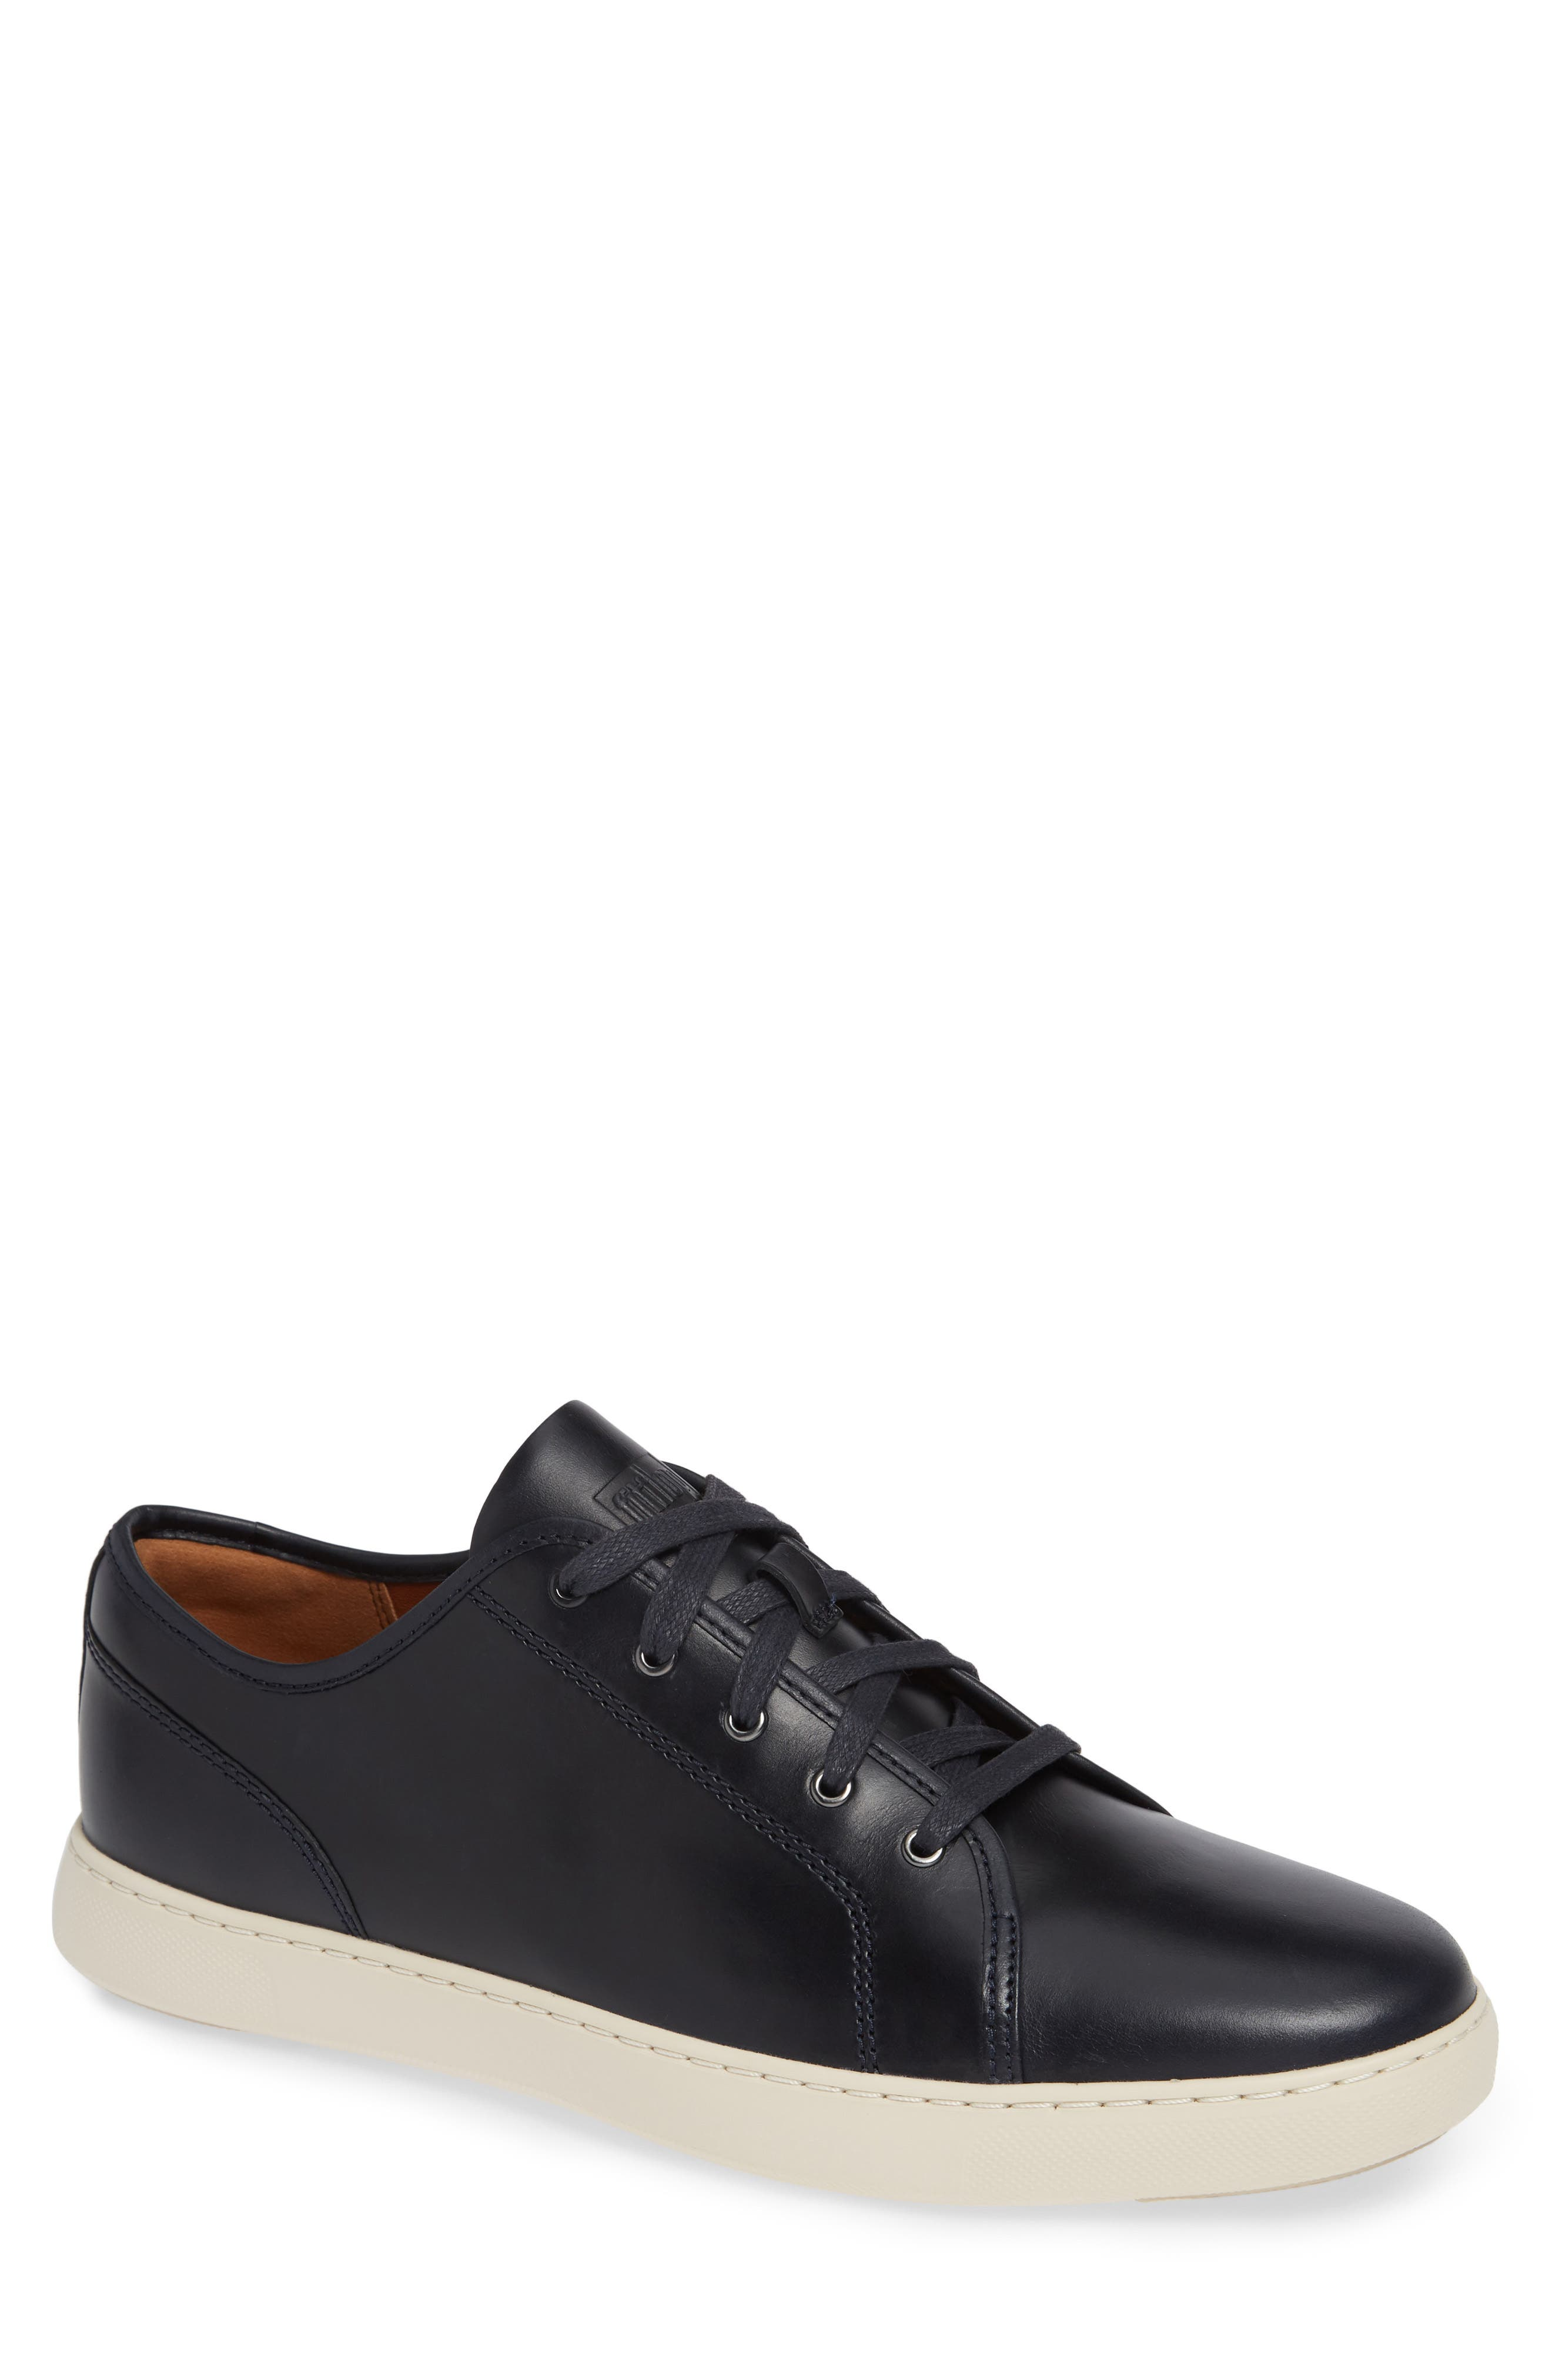 Christophe Low Top Sneaker,                             Main thumbnail 1, color,                             411